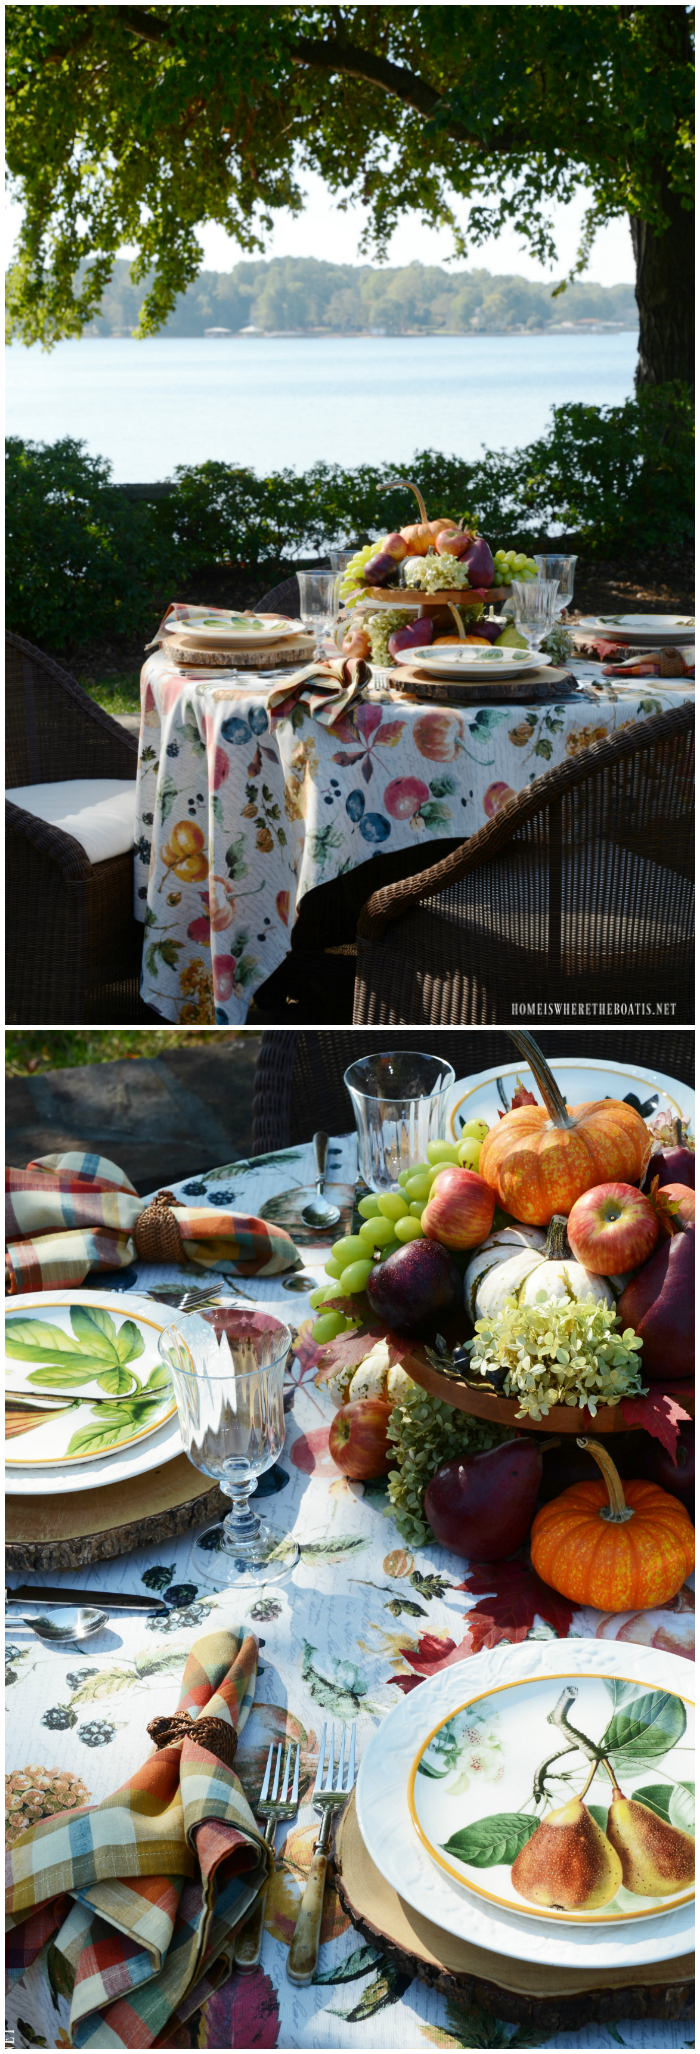 Botanical fall fruits tablescape and easy 5-minute centerpiece | ©homeiswheretheboatis.net #tablescapes #fall #fruit #alfresco #lake